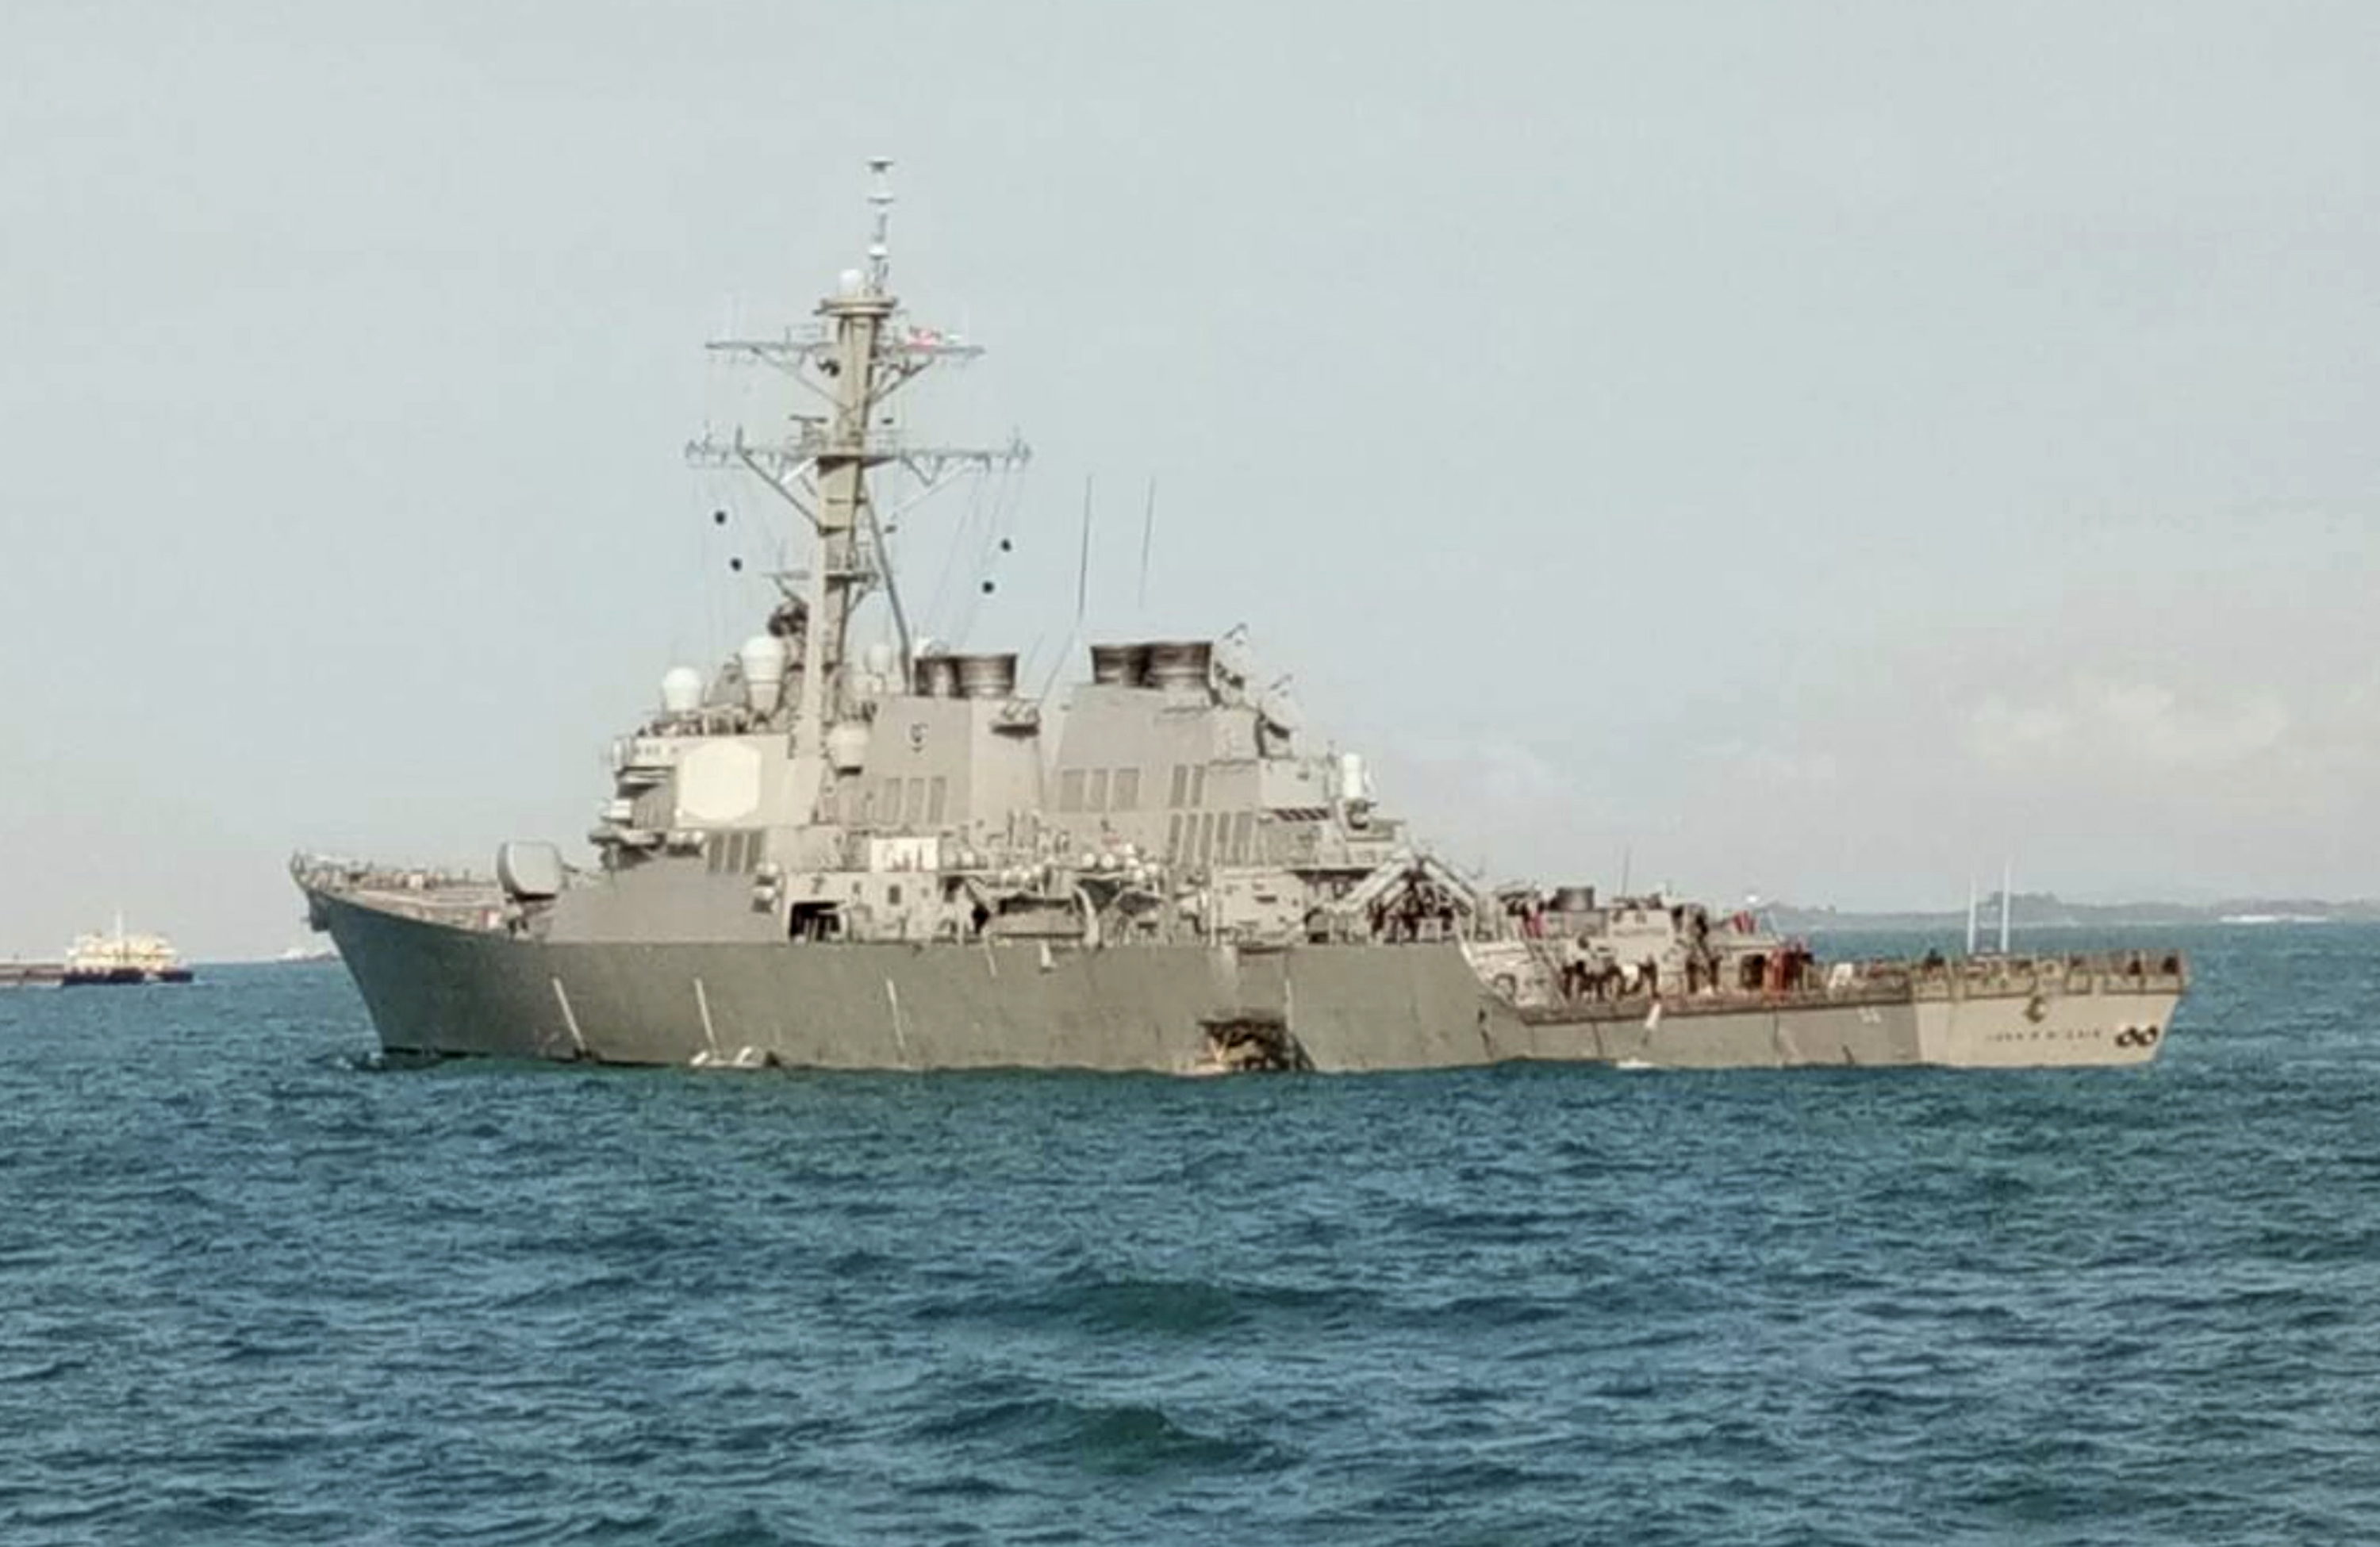 Malaysia Singapore US Navy Ship Collision In this photo released by the Royal Malaysian Navy, the U.S guided-missile destroyer USS John S. McCain is seen after a collision, off Johor, Malaysia, Monday, Aug. 21, 2017. A number of U.S. sailors were missing after a collision between the USS John S. McCain and a tanker early Monday east of Singapore, the second accident involving a ship from the Navy's 7th Fleet in the Pacific in two months. (Royal Malaysian Navy via AP)